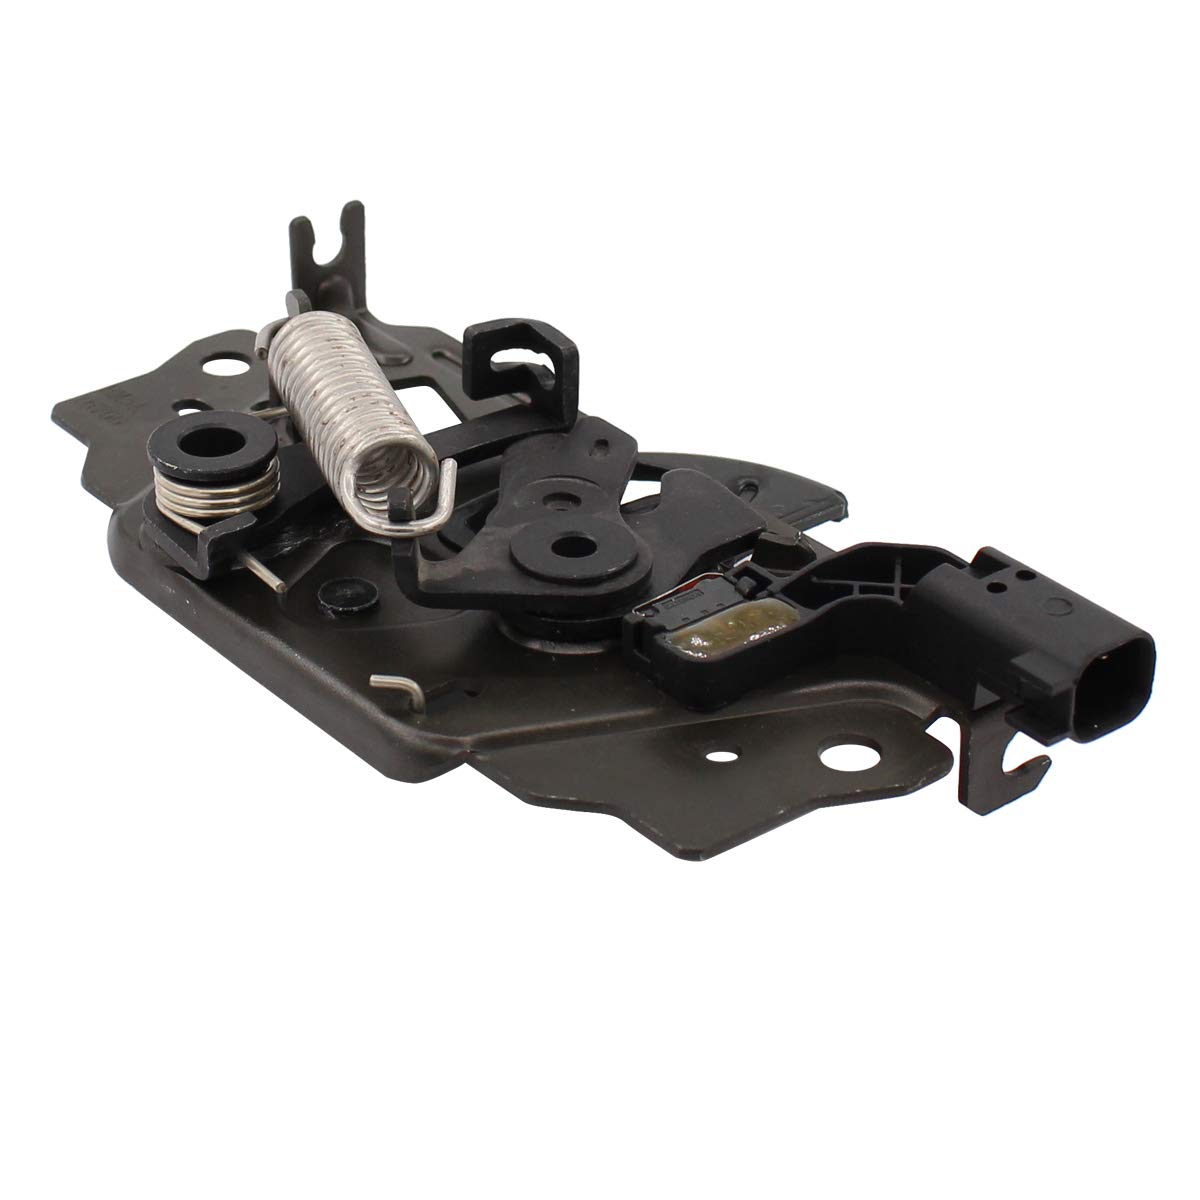 Hood Latch Assembly For Ford Focus Escape Lincoln MKC 2012 2013 2014 2015 2016 2017 2018